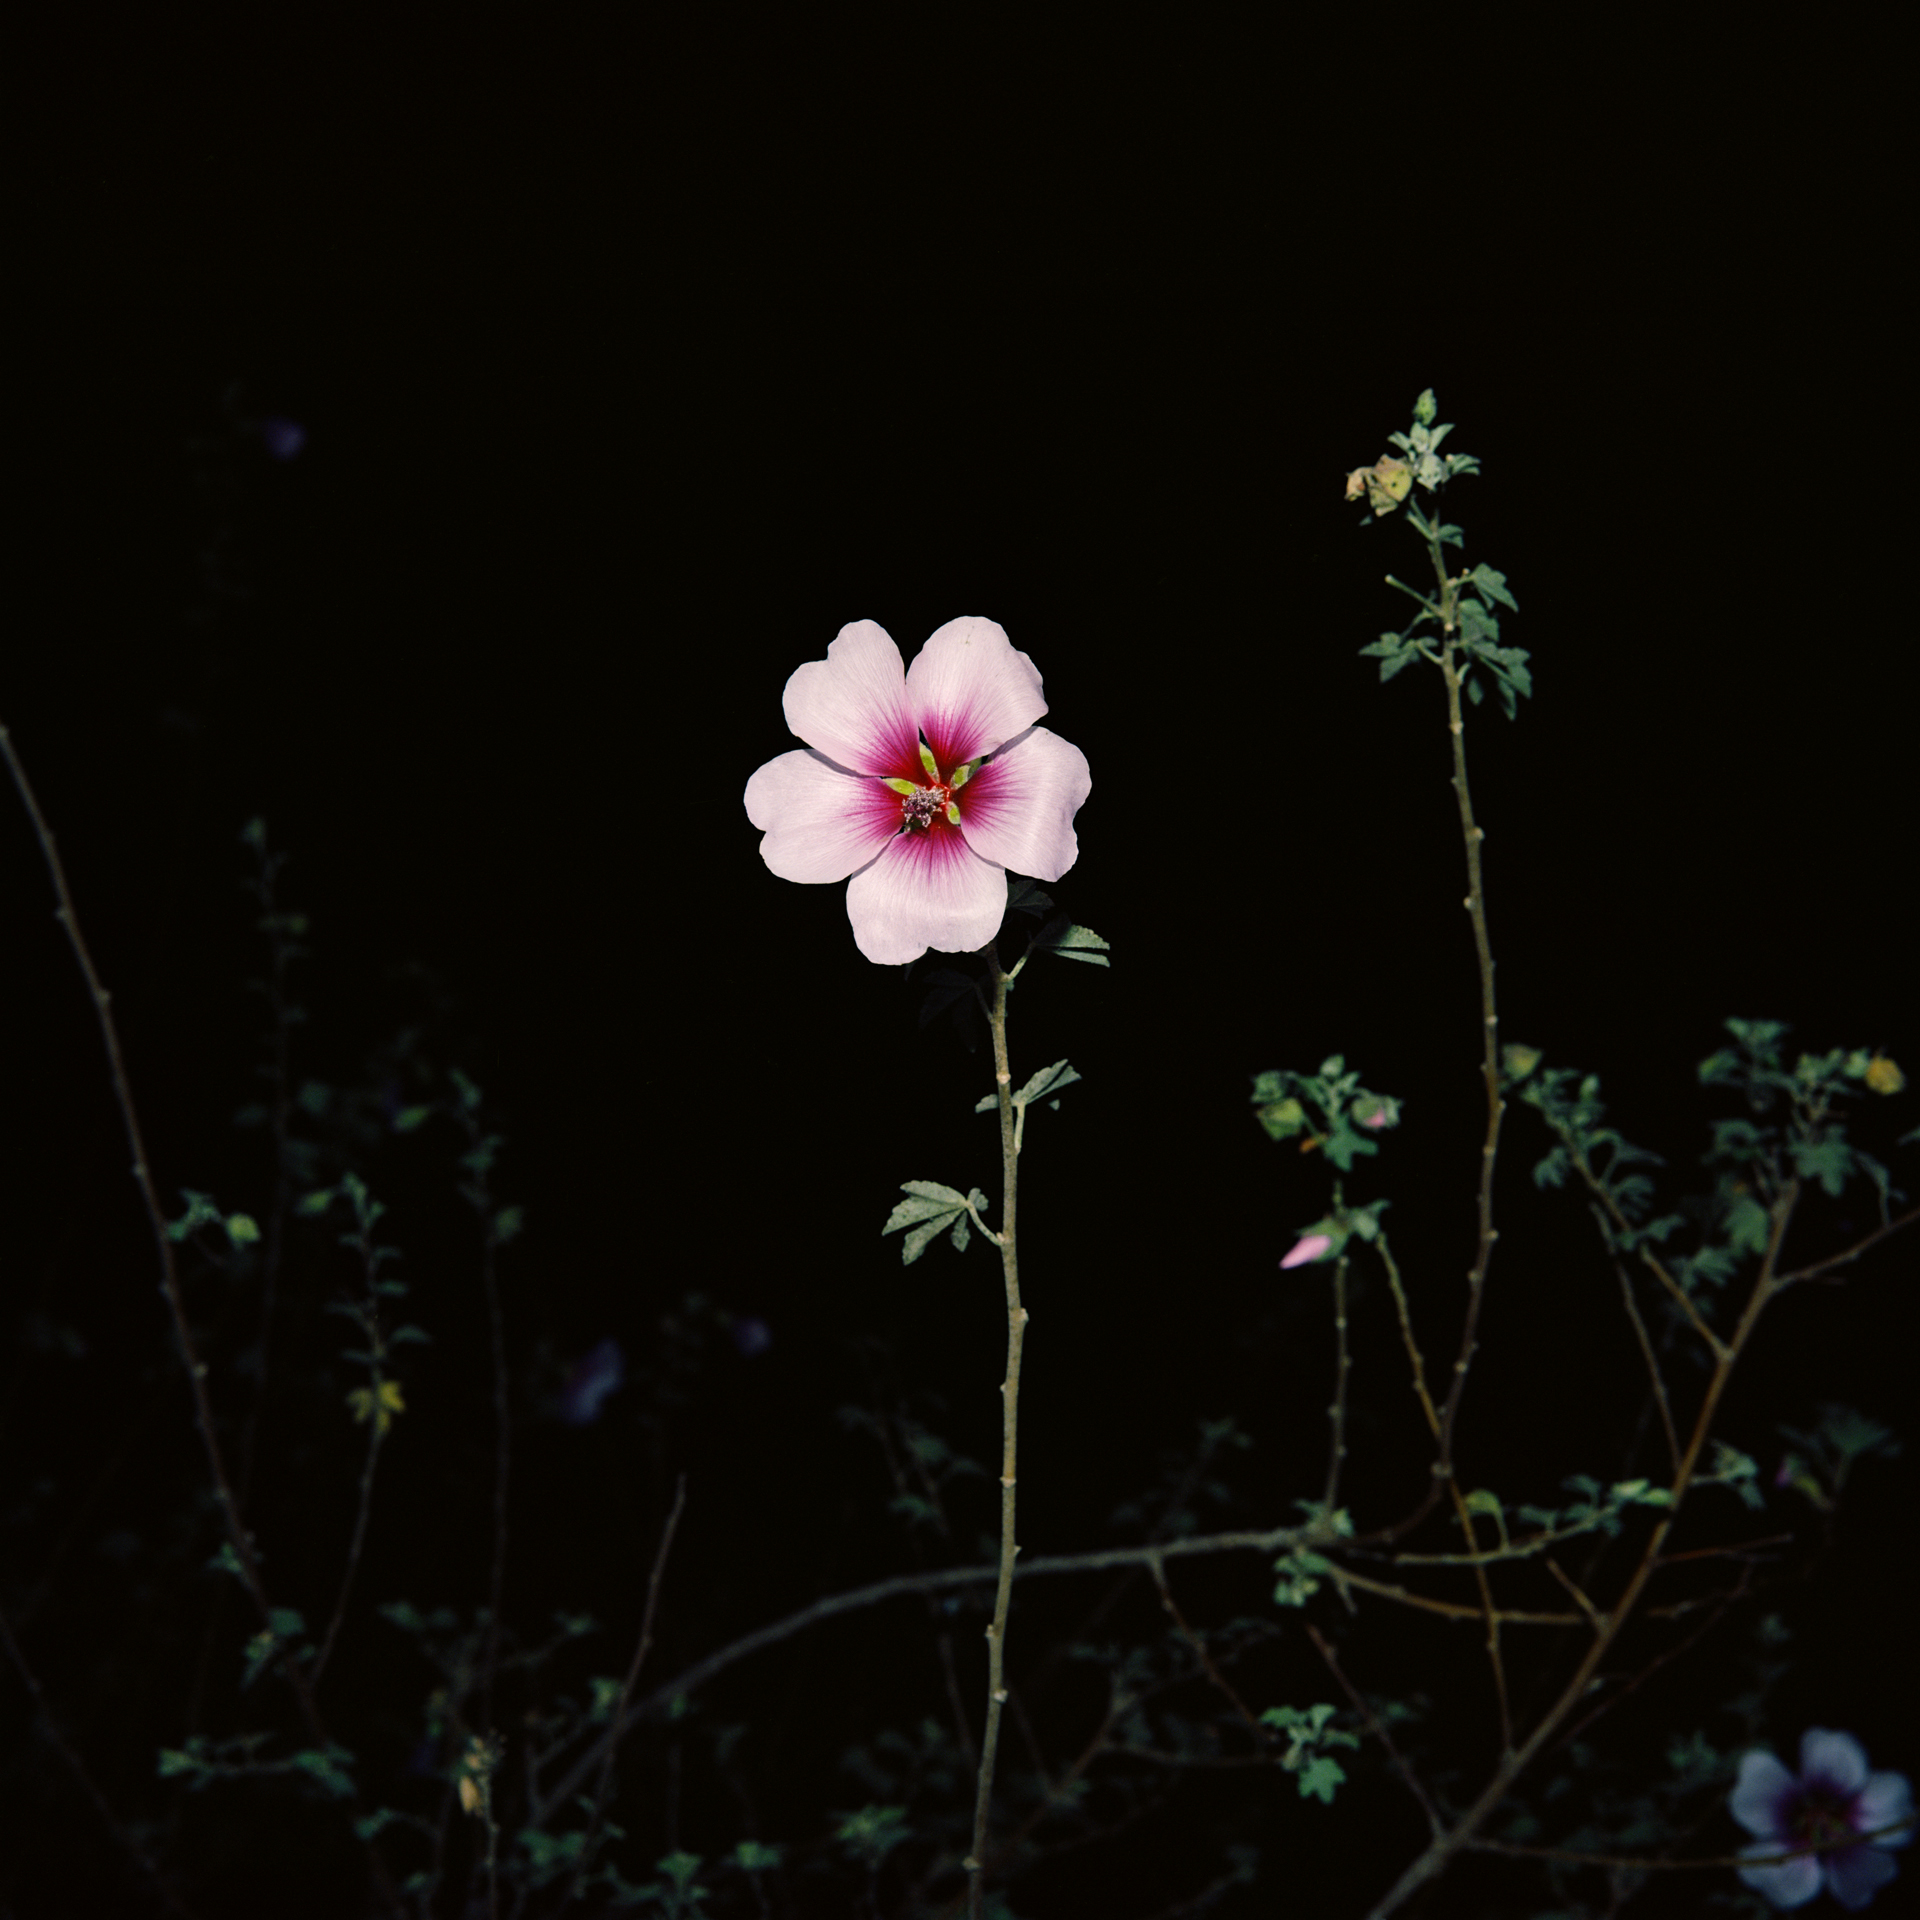 Night Flower 132